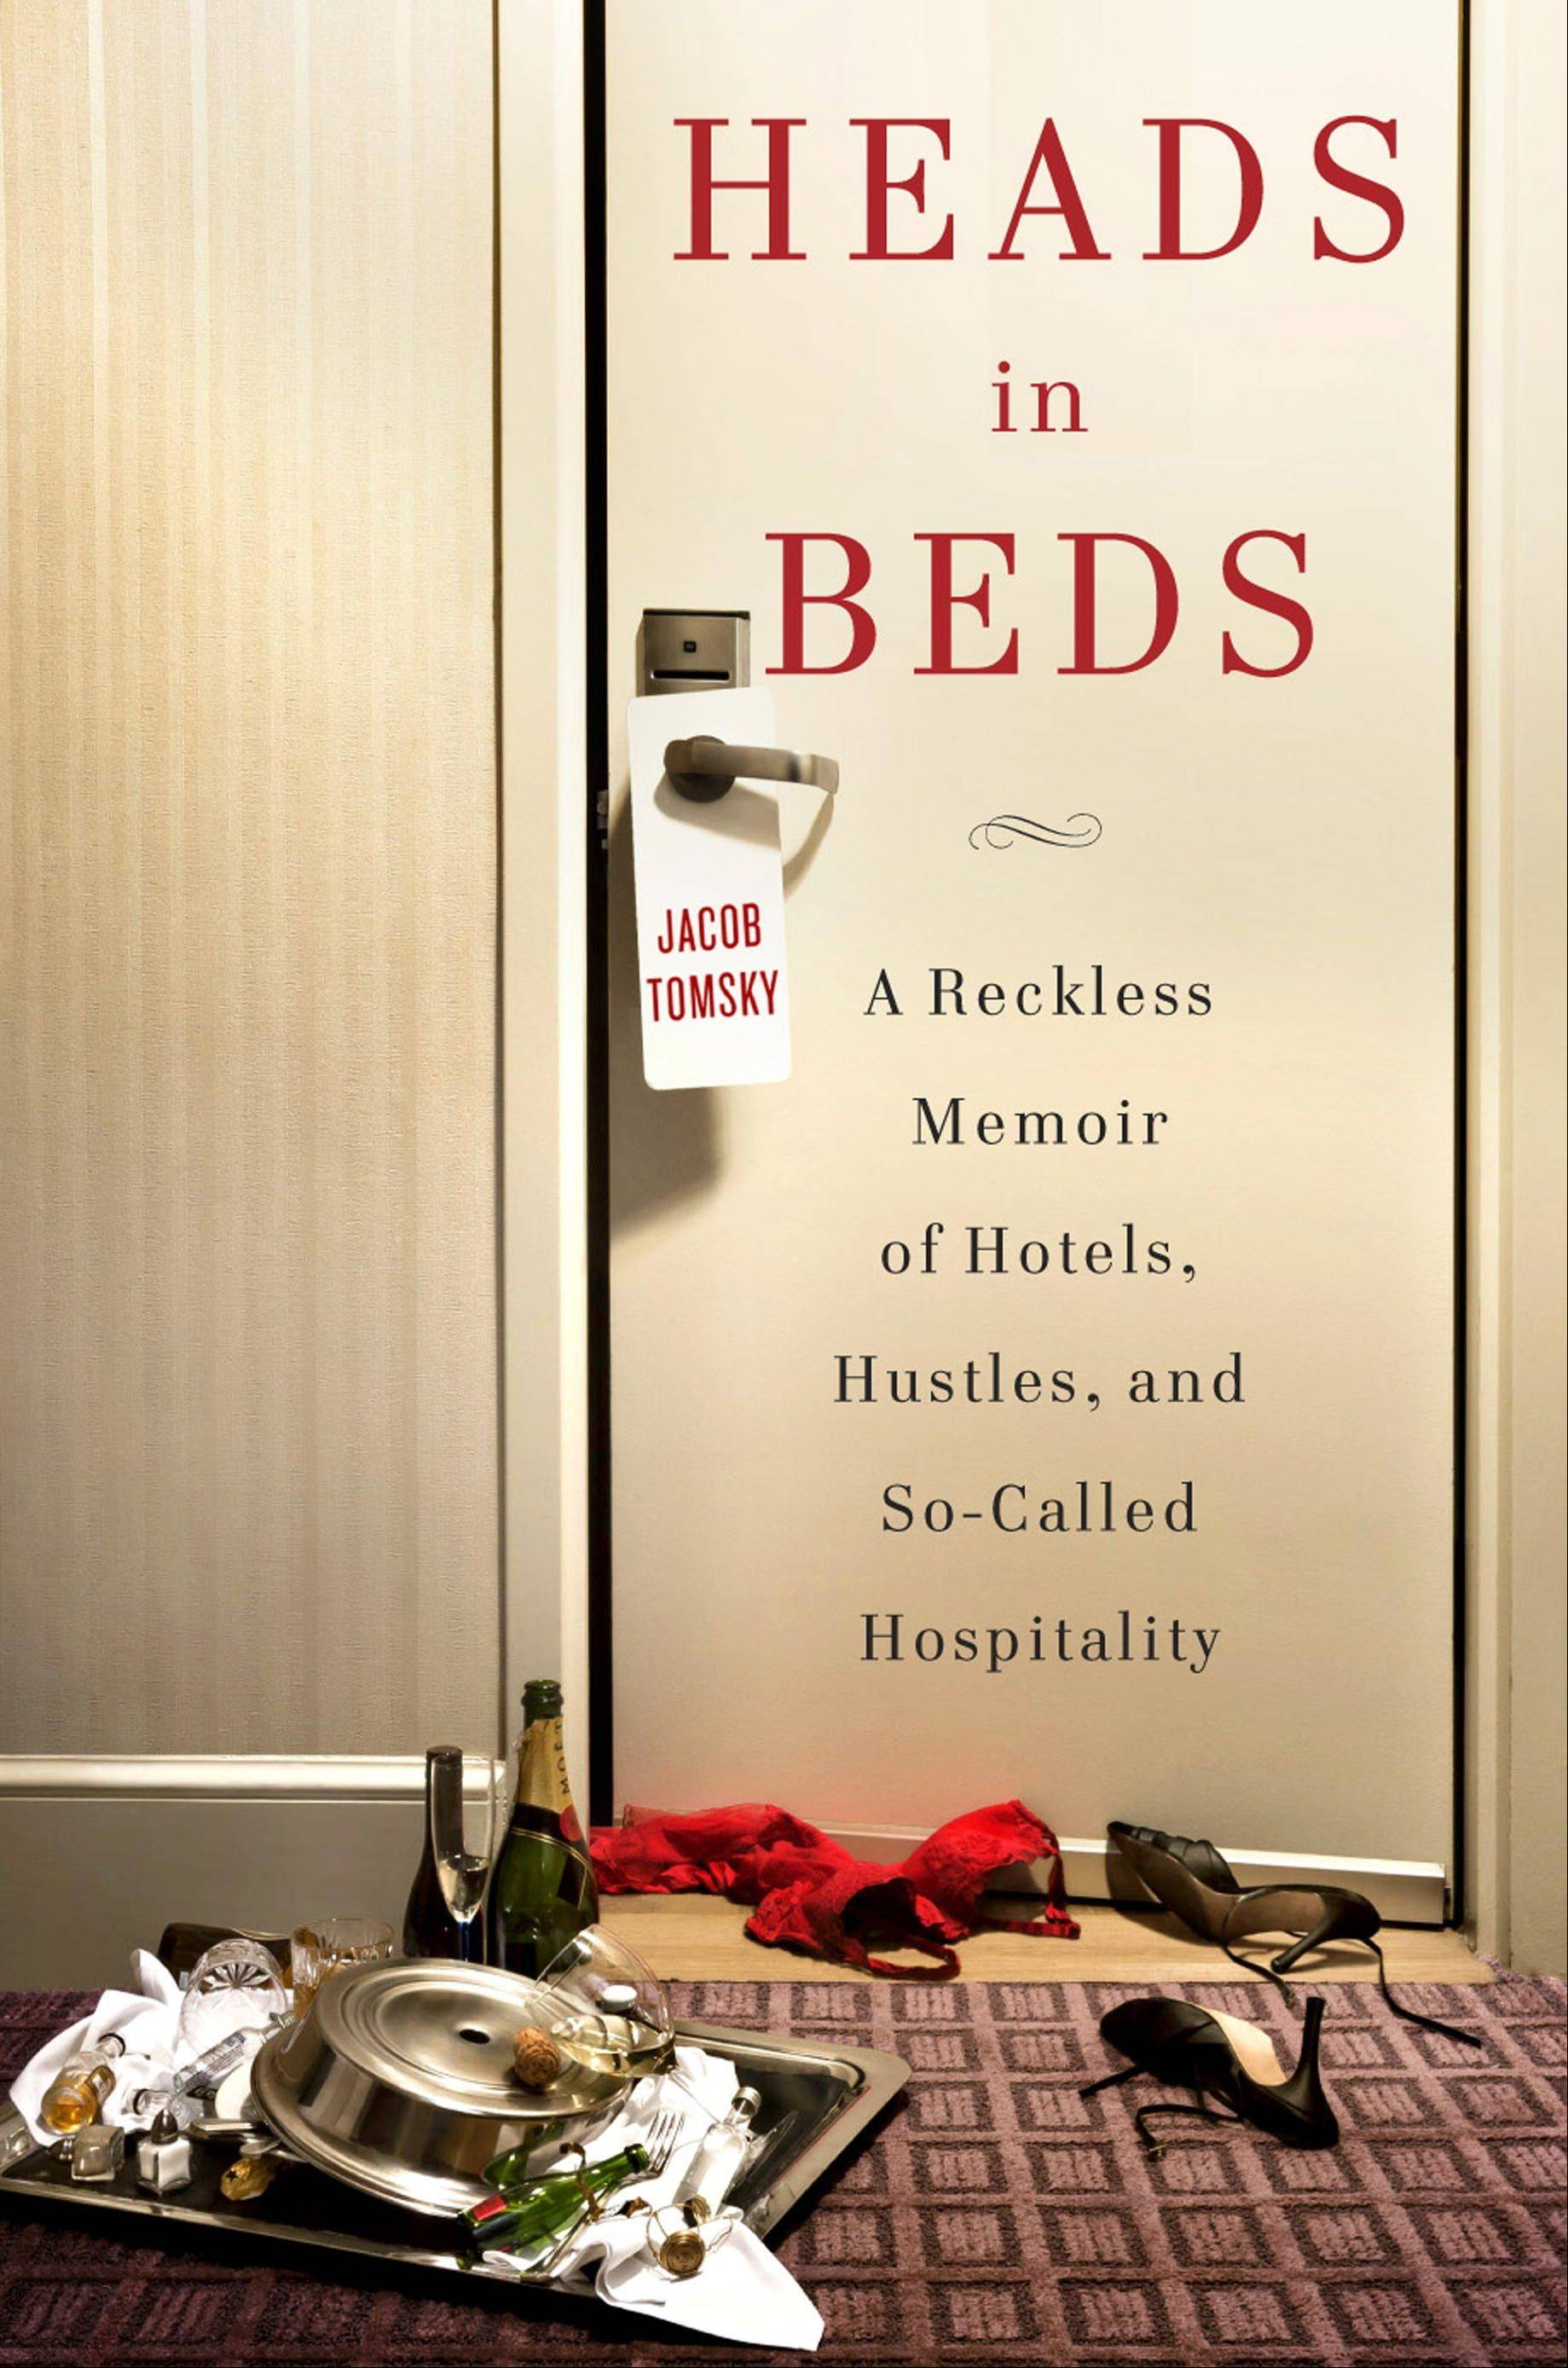 �Heads in Beds: A Reckless Memoir of Hotels, Hustles, and So-Called Hospitality� by Jacob Tomsky